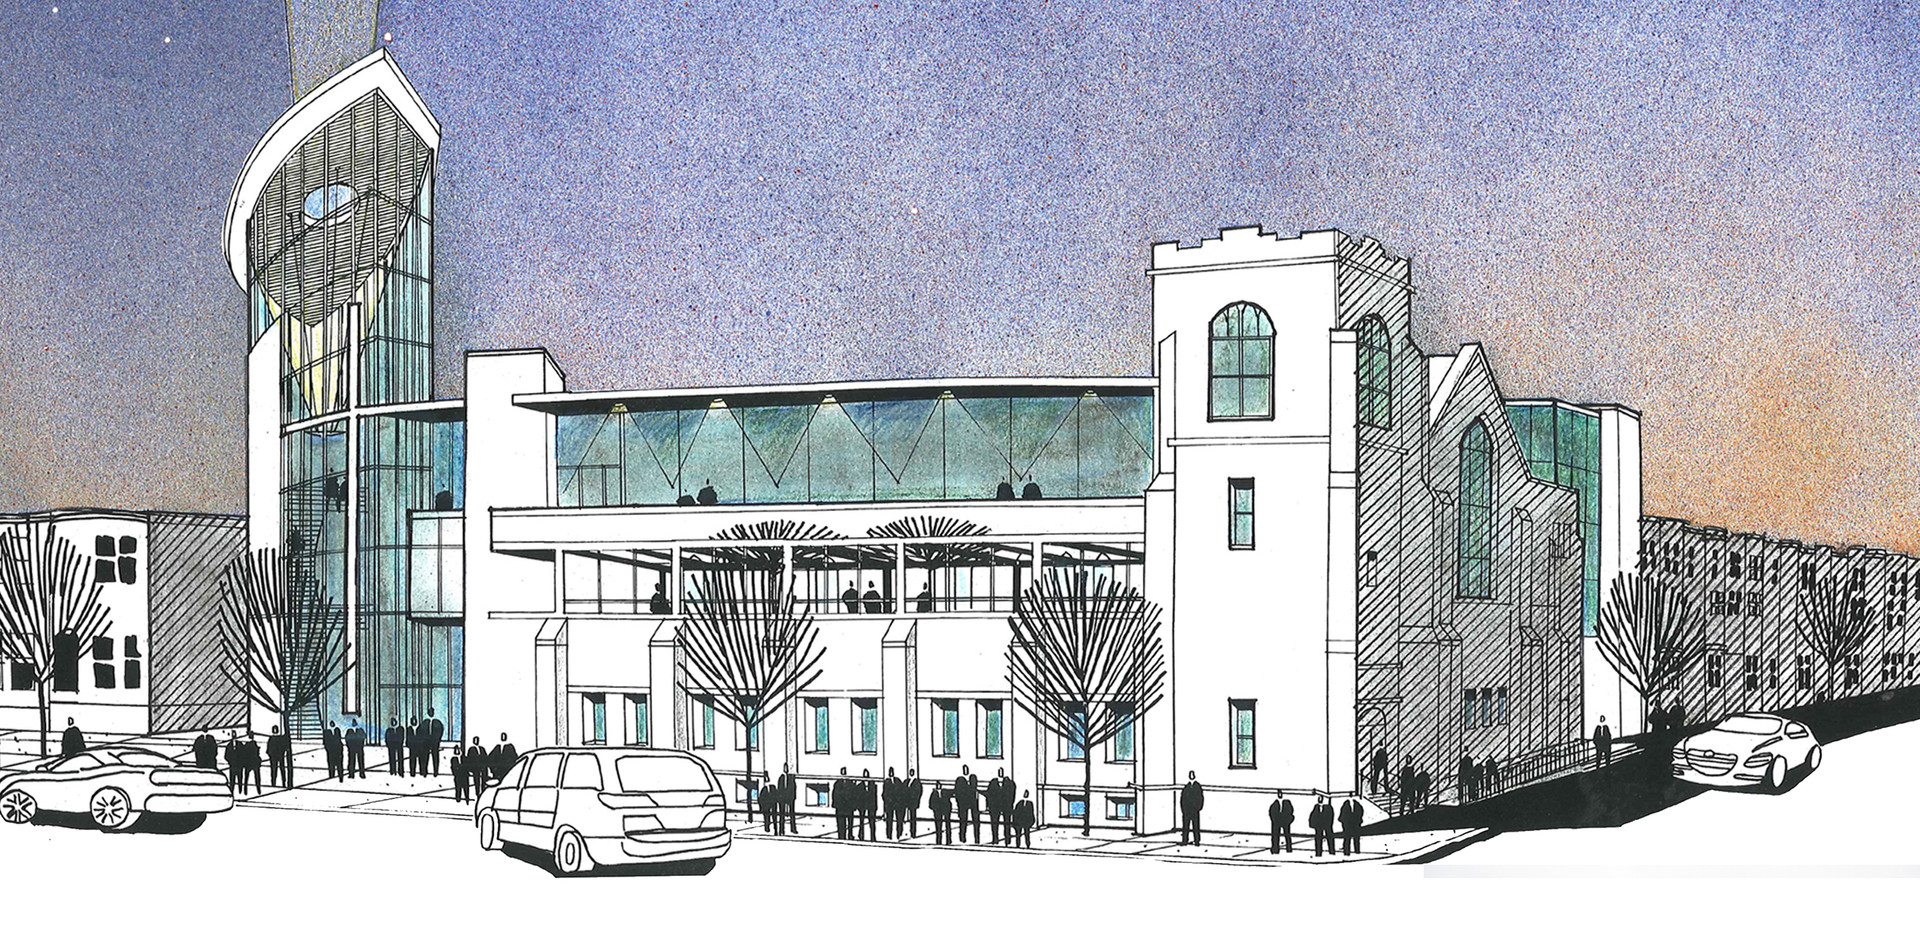 Zion Baptist Church Expansion -  Sketch